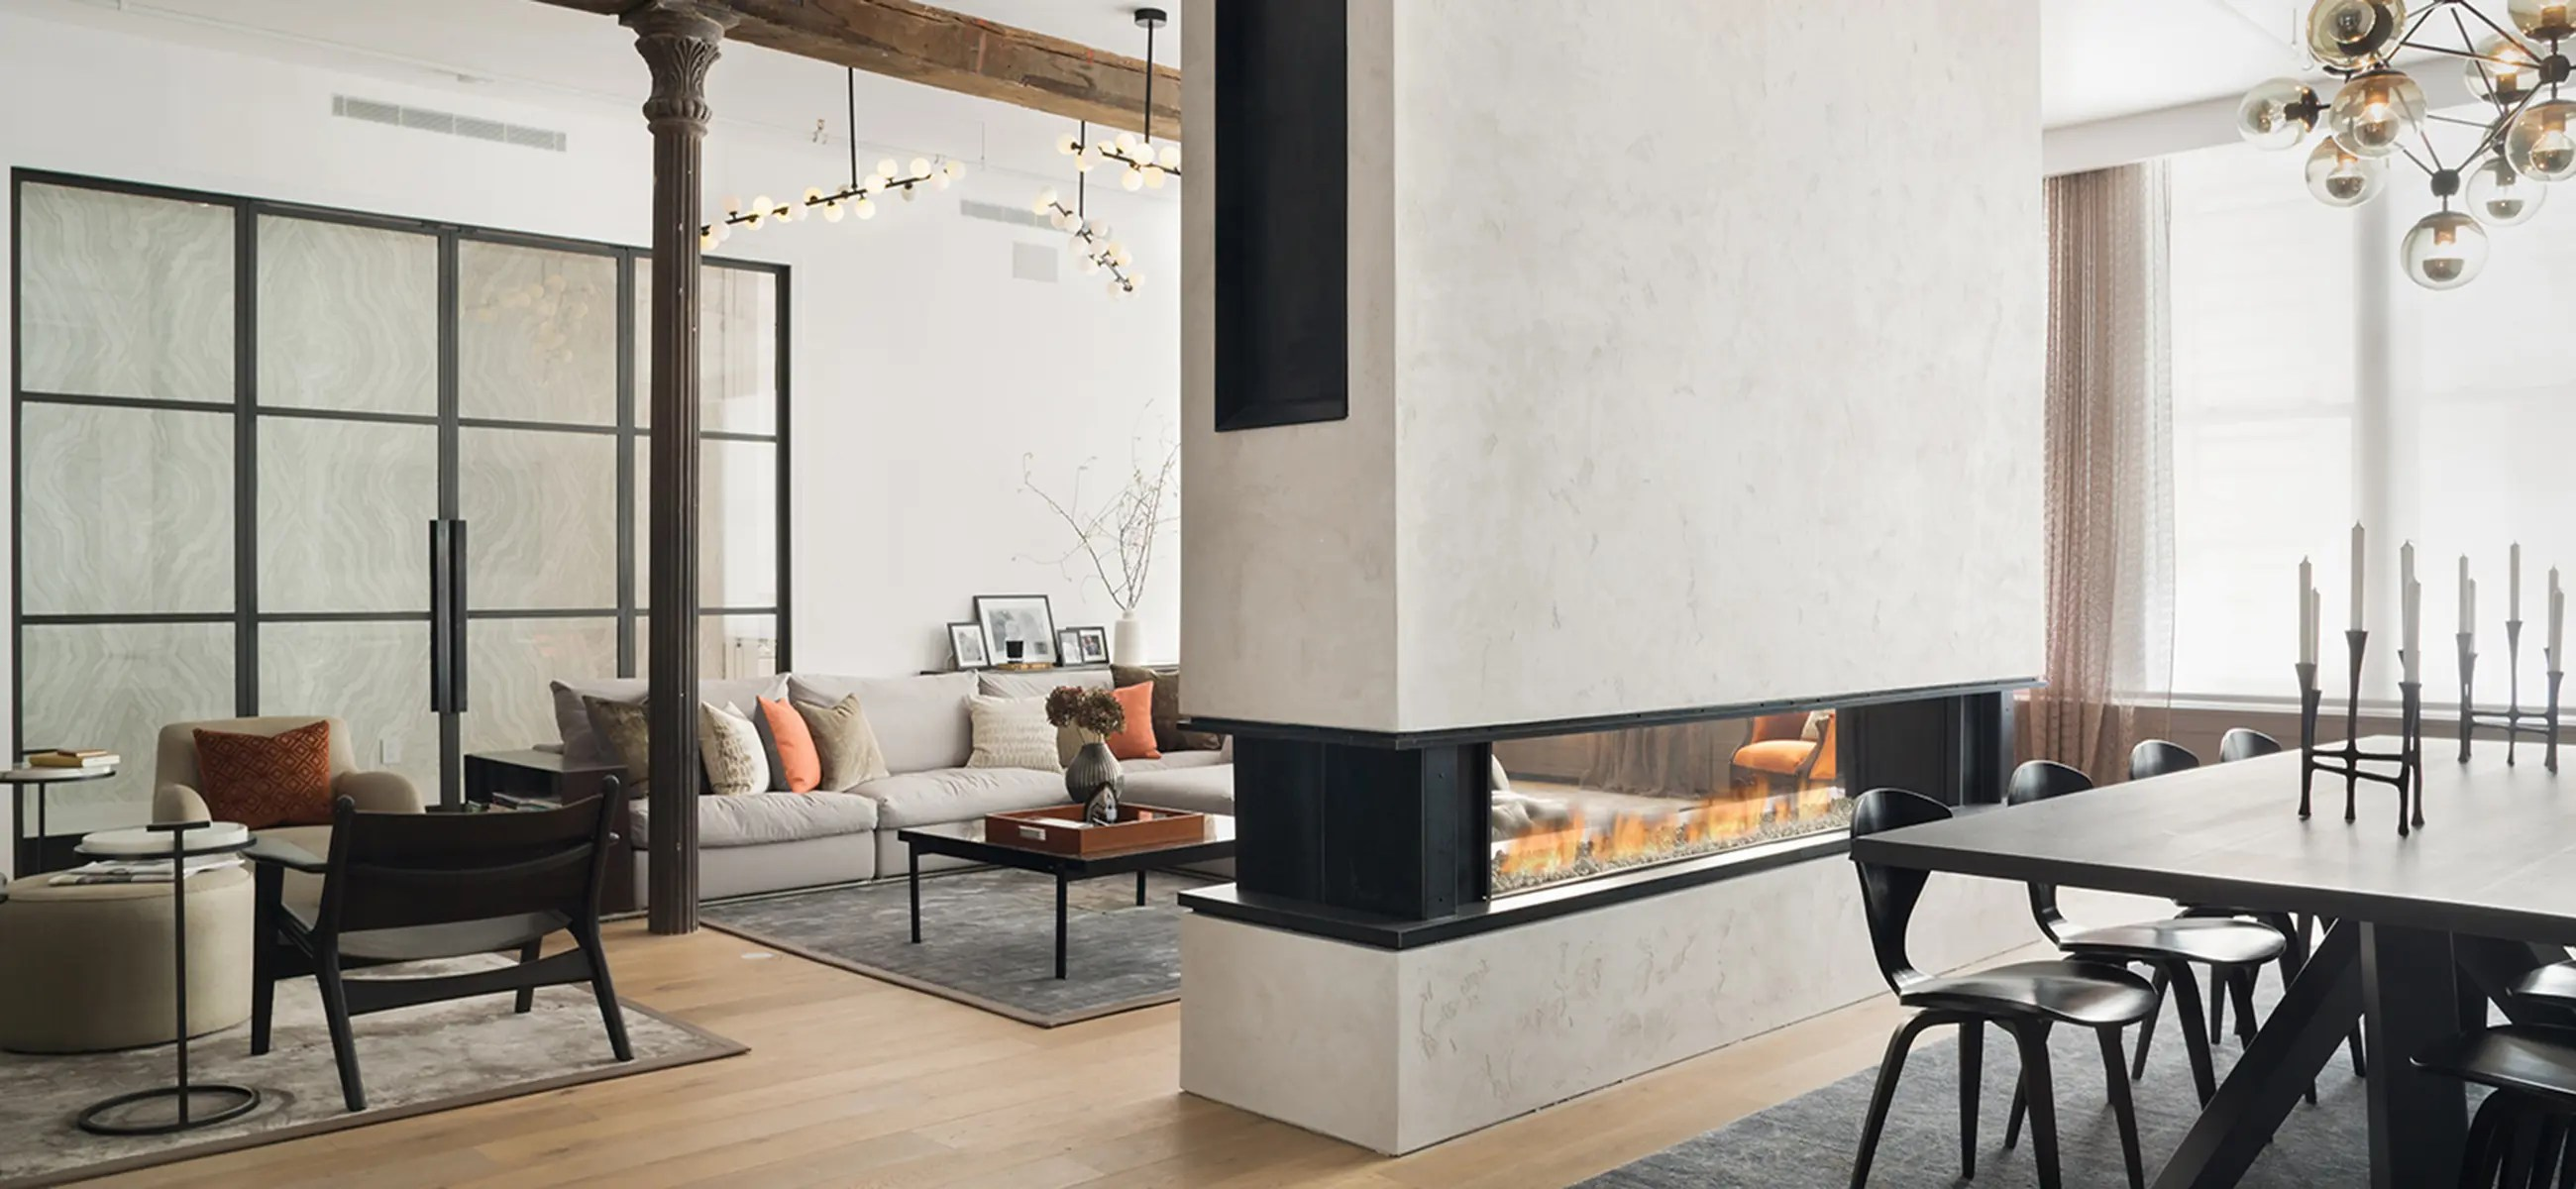 Modern Fireplaces Tenore 240 By Element4 See Through Fireplace Direct